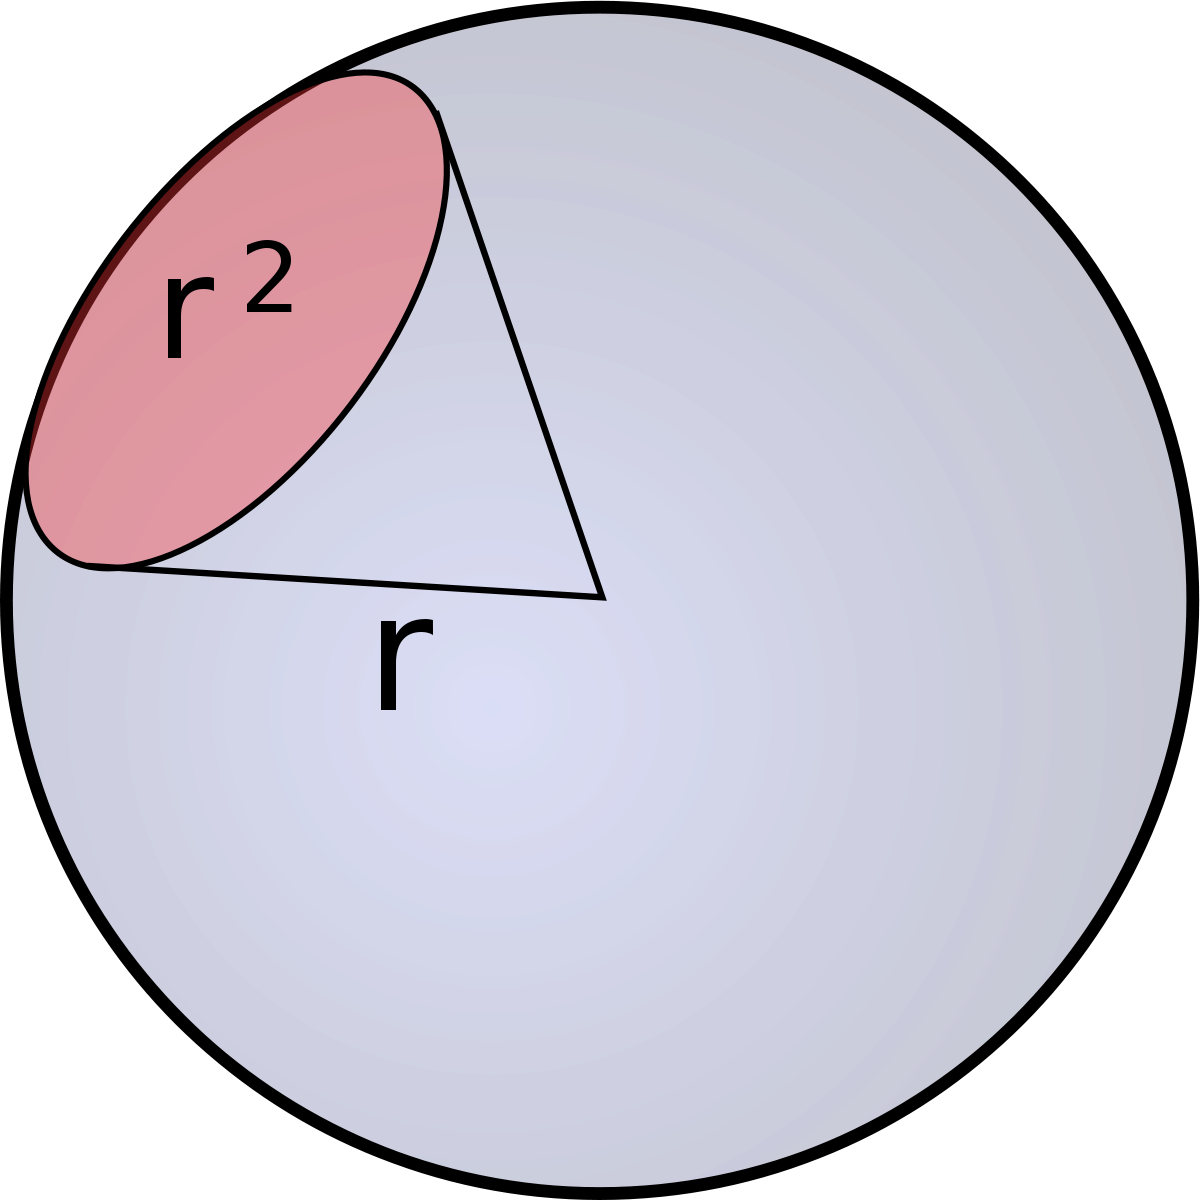 Fraction clipart radius. Steradian wikipedia